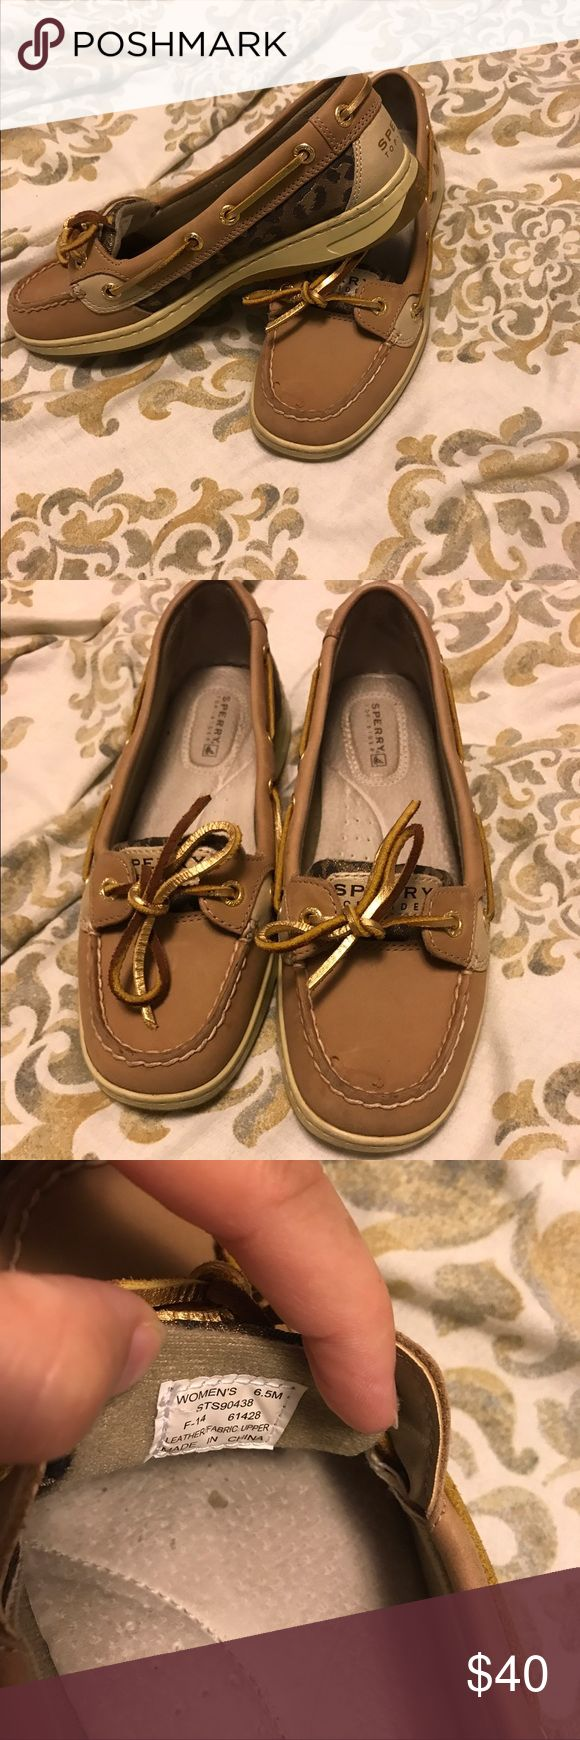 Sperry Angelfish Cheetah size 6.5 Sperry Top-Sider Women's Angelfish Boat Shoe Cheetah size 6.5. Barely even worn in, basically brand new! Sperry Shoes Flats & Loafers